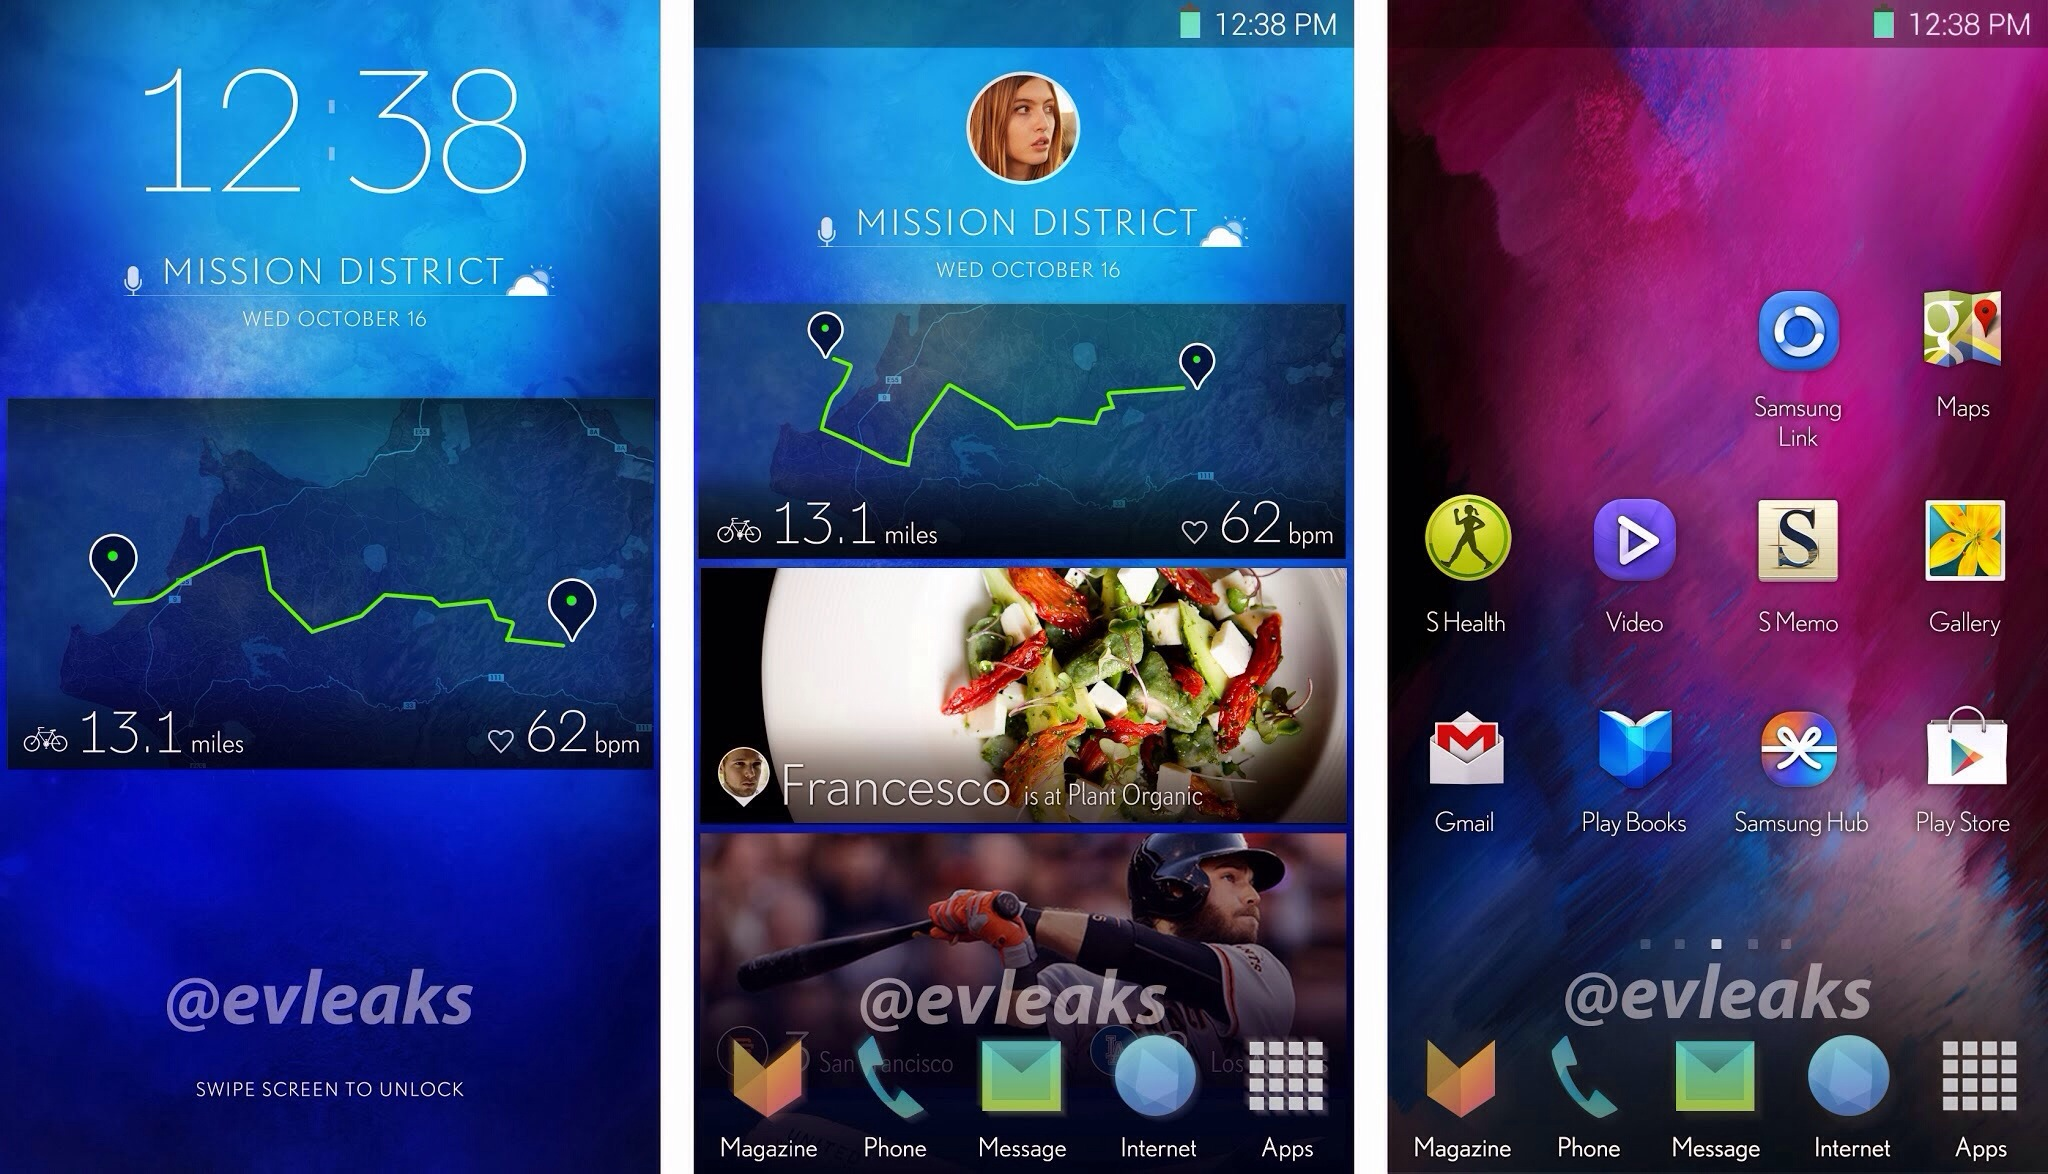 20140107 212846 - LEAKED : Samsung's new Touchwiz UI